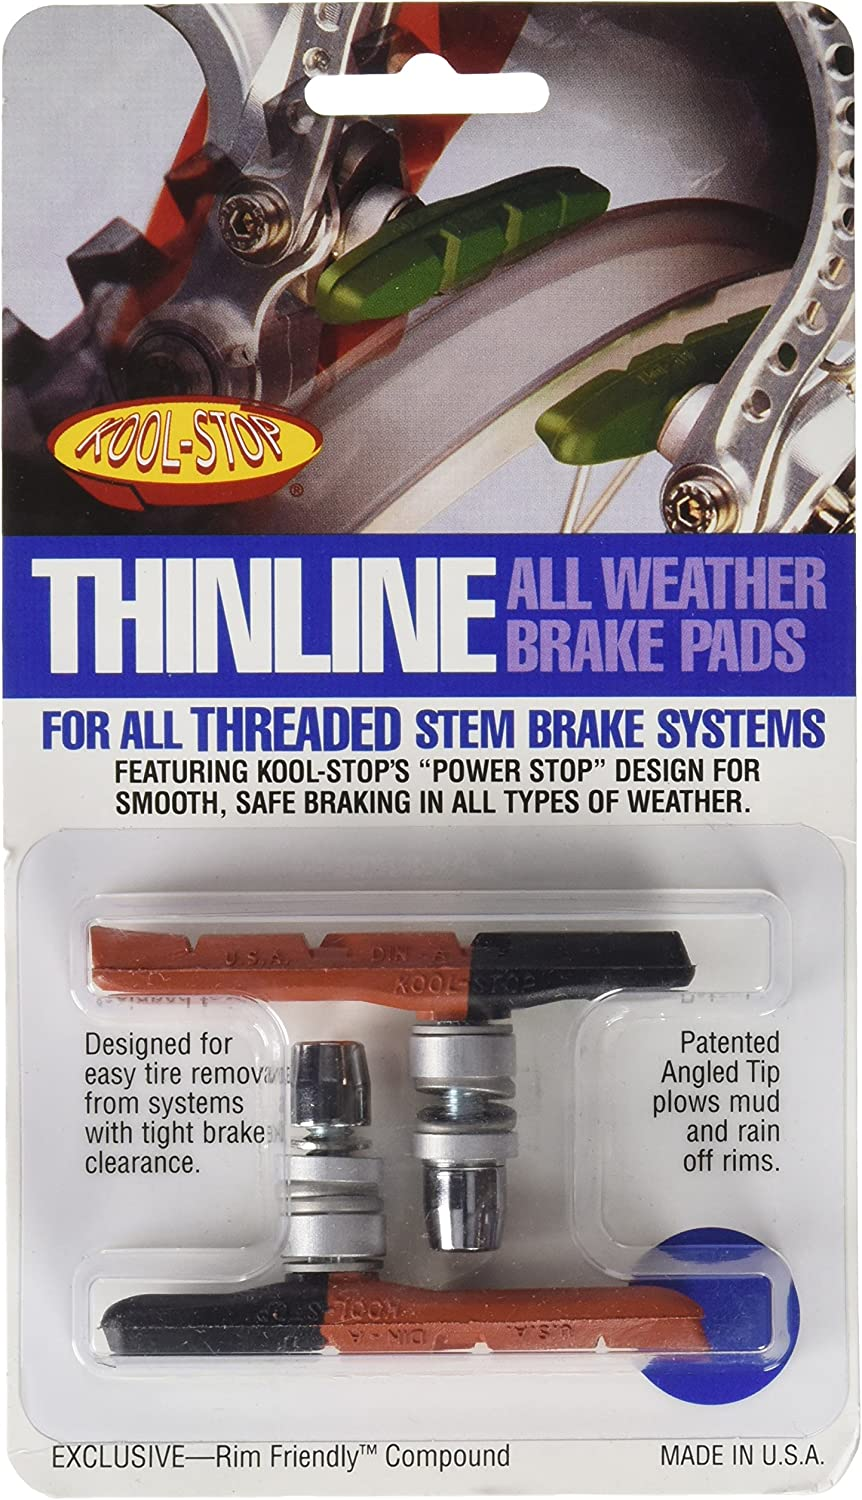 New Kool-Stop Mountain Brake Shoe Threaded Post for Linear Pull Salmon Compound